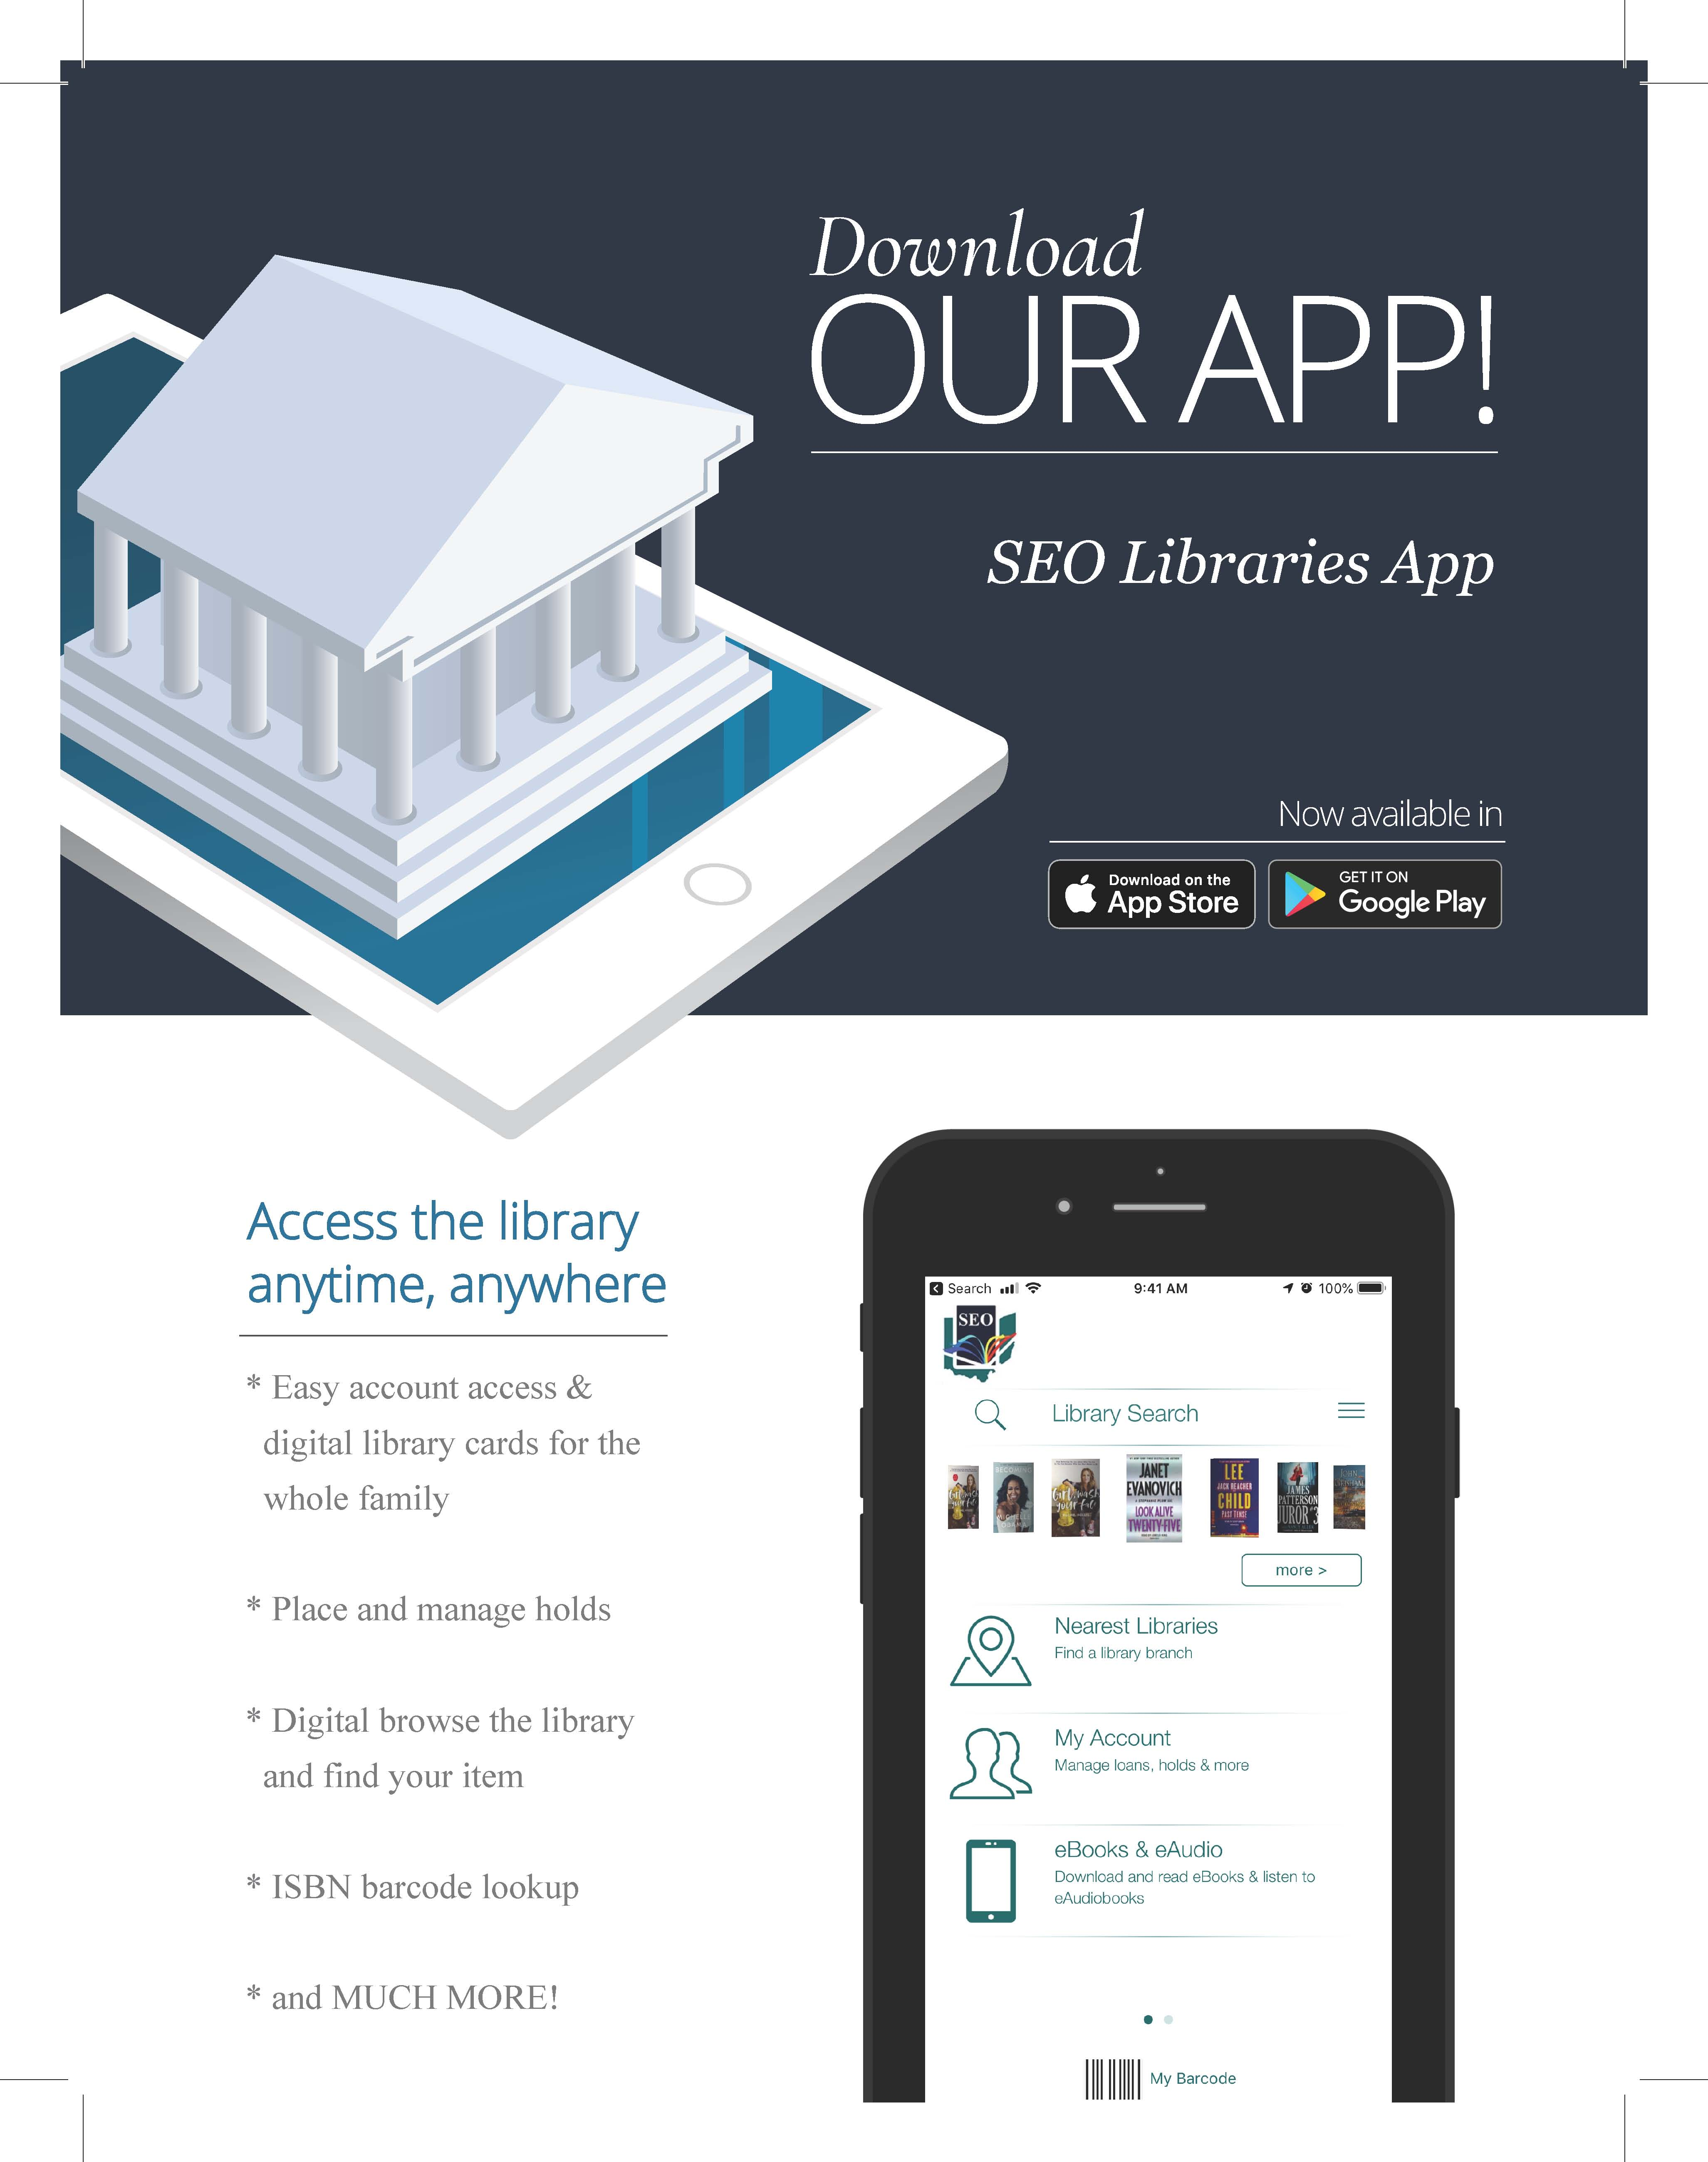 The new SEO Libraries App is now available for Apple and